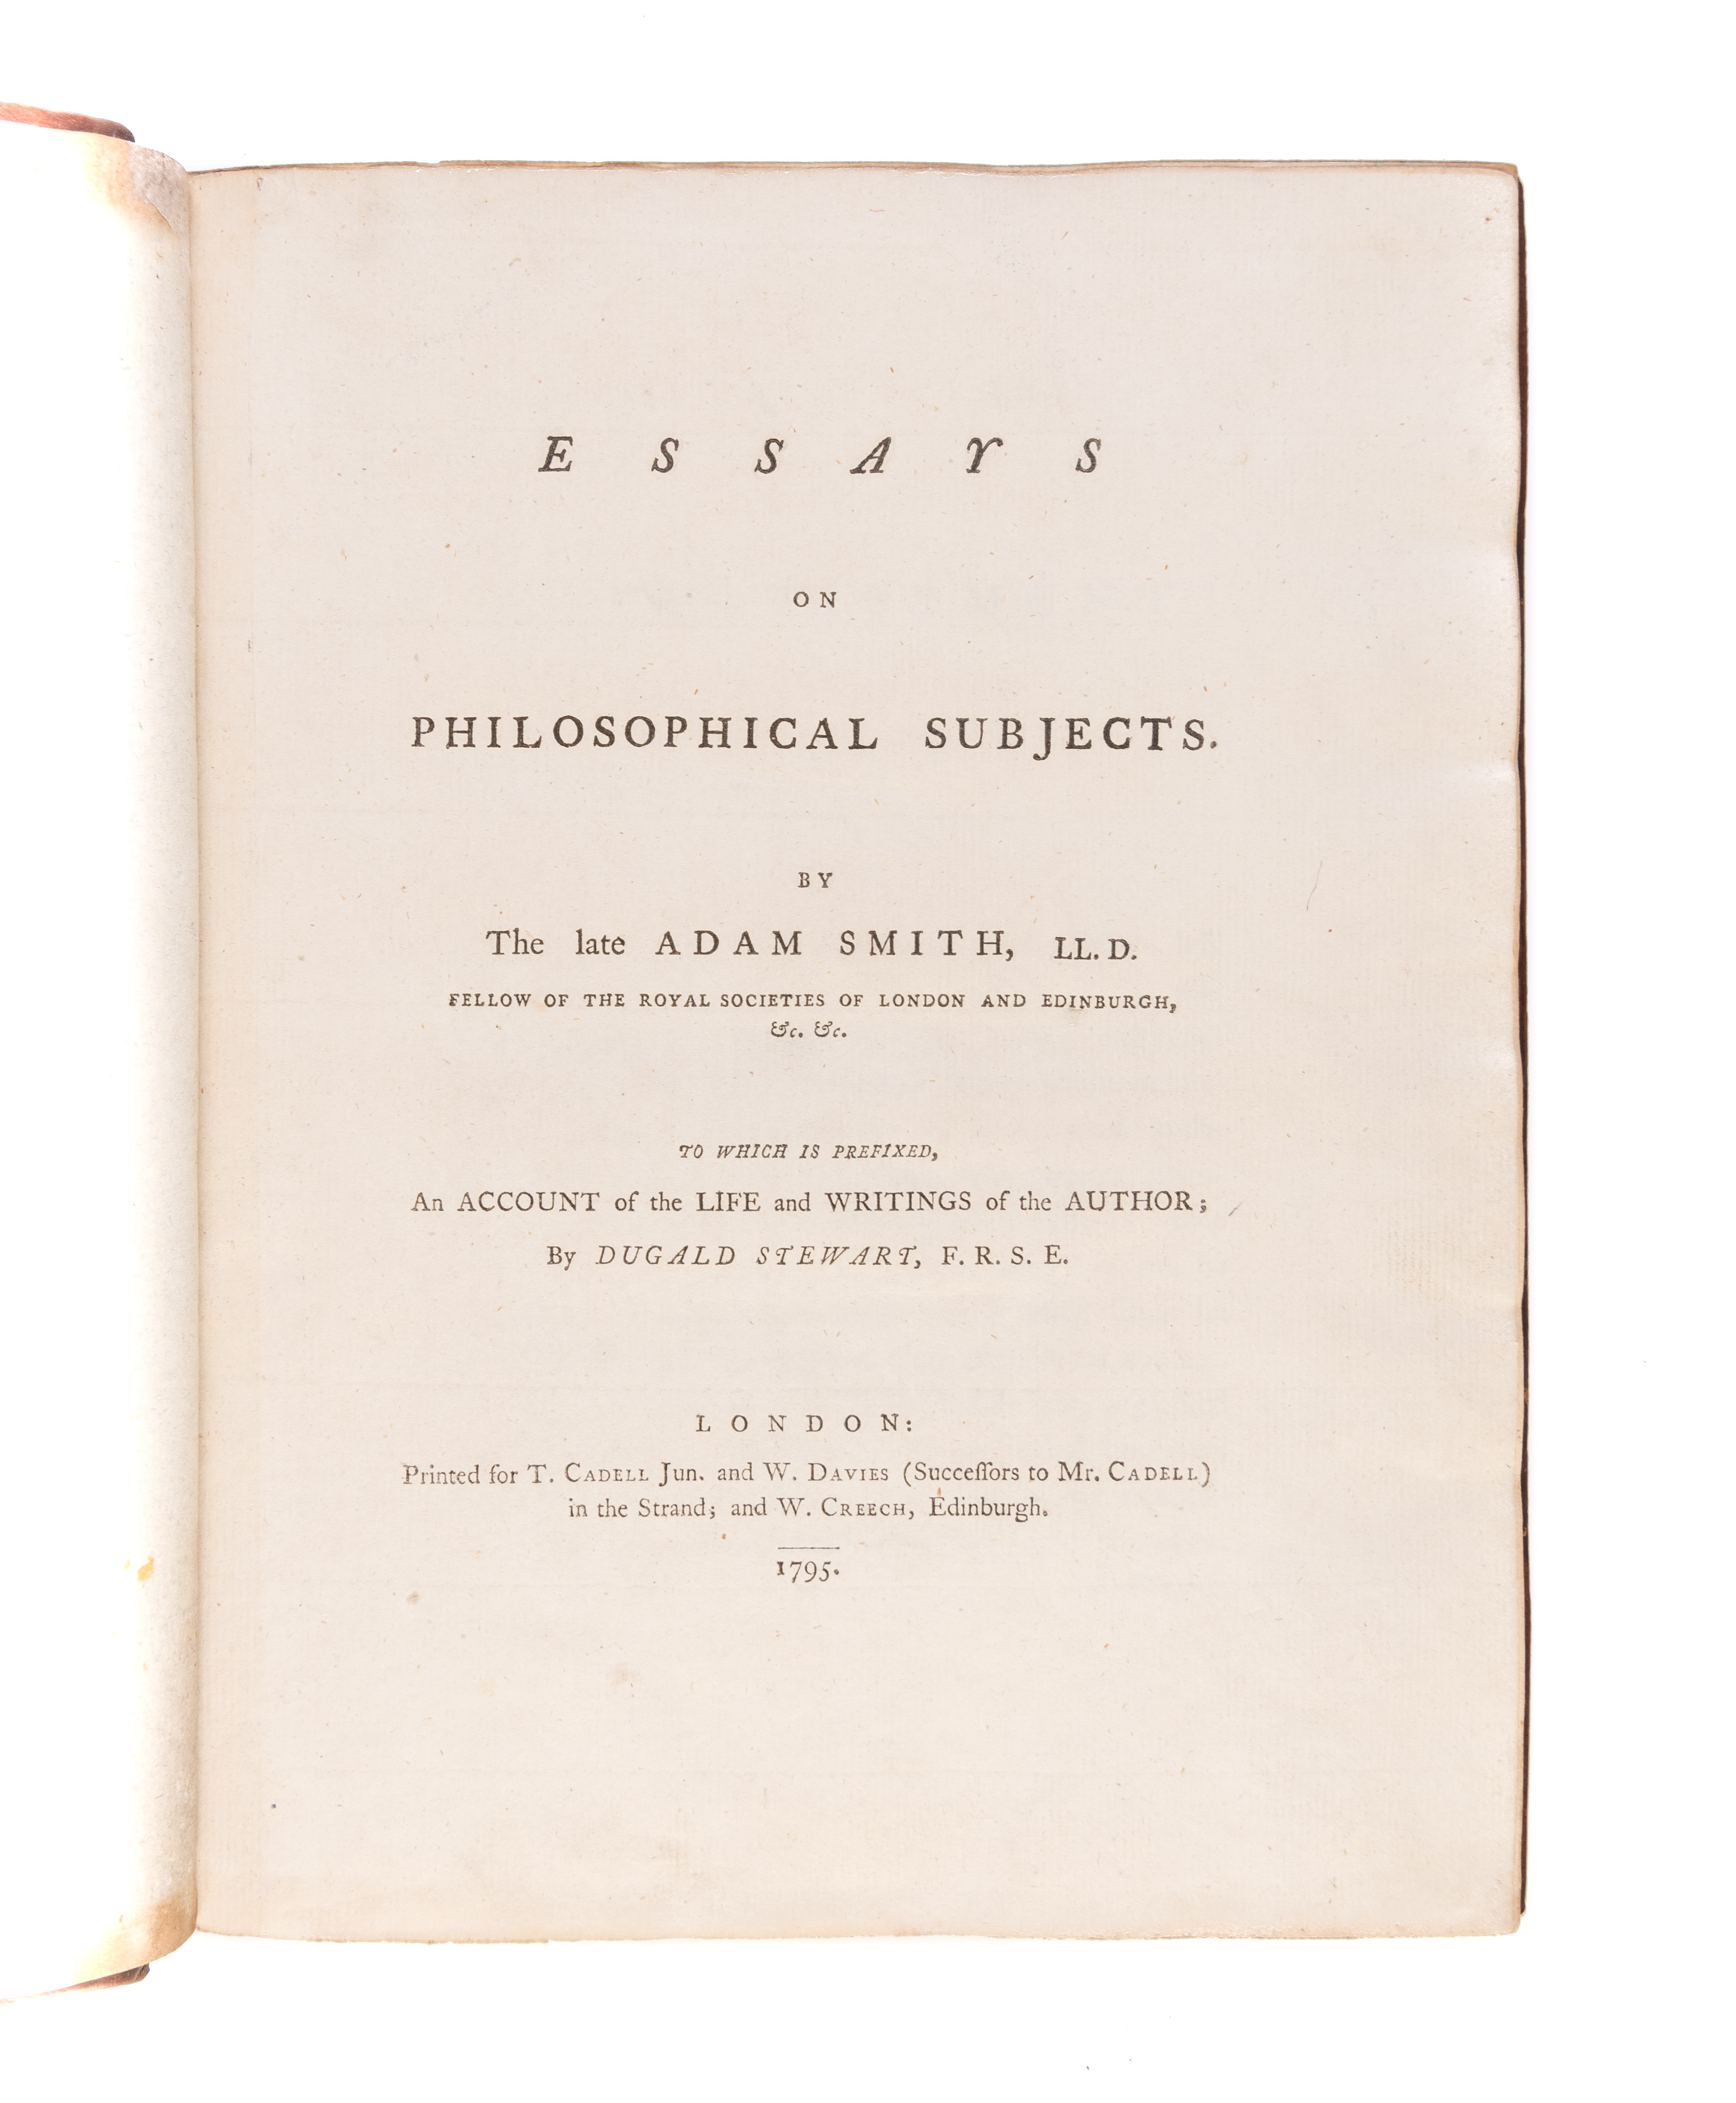 004 Essays On Philosophical Subjects 55036 01 Essay Best Smith Pdf Full